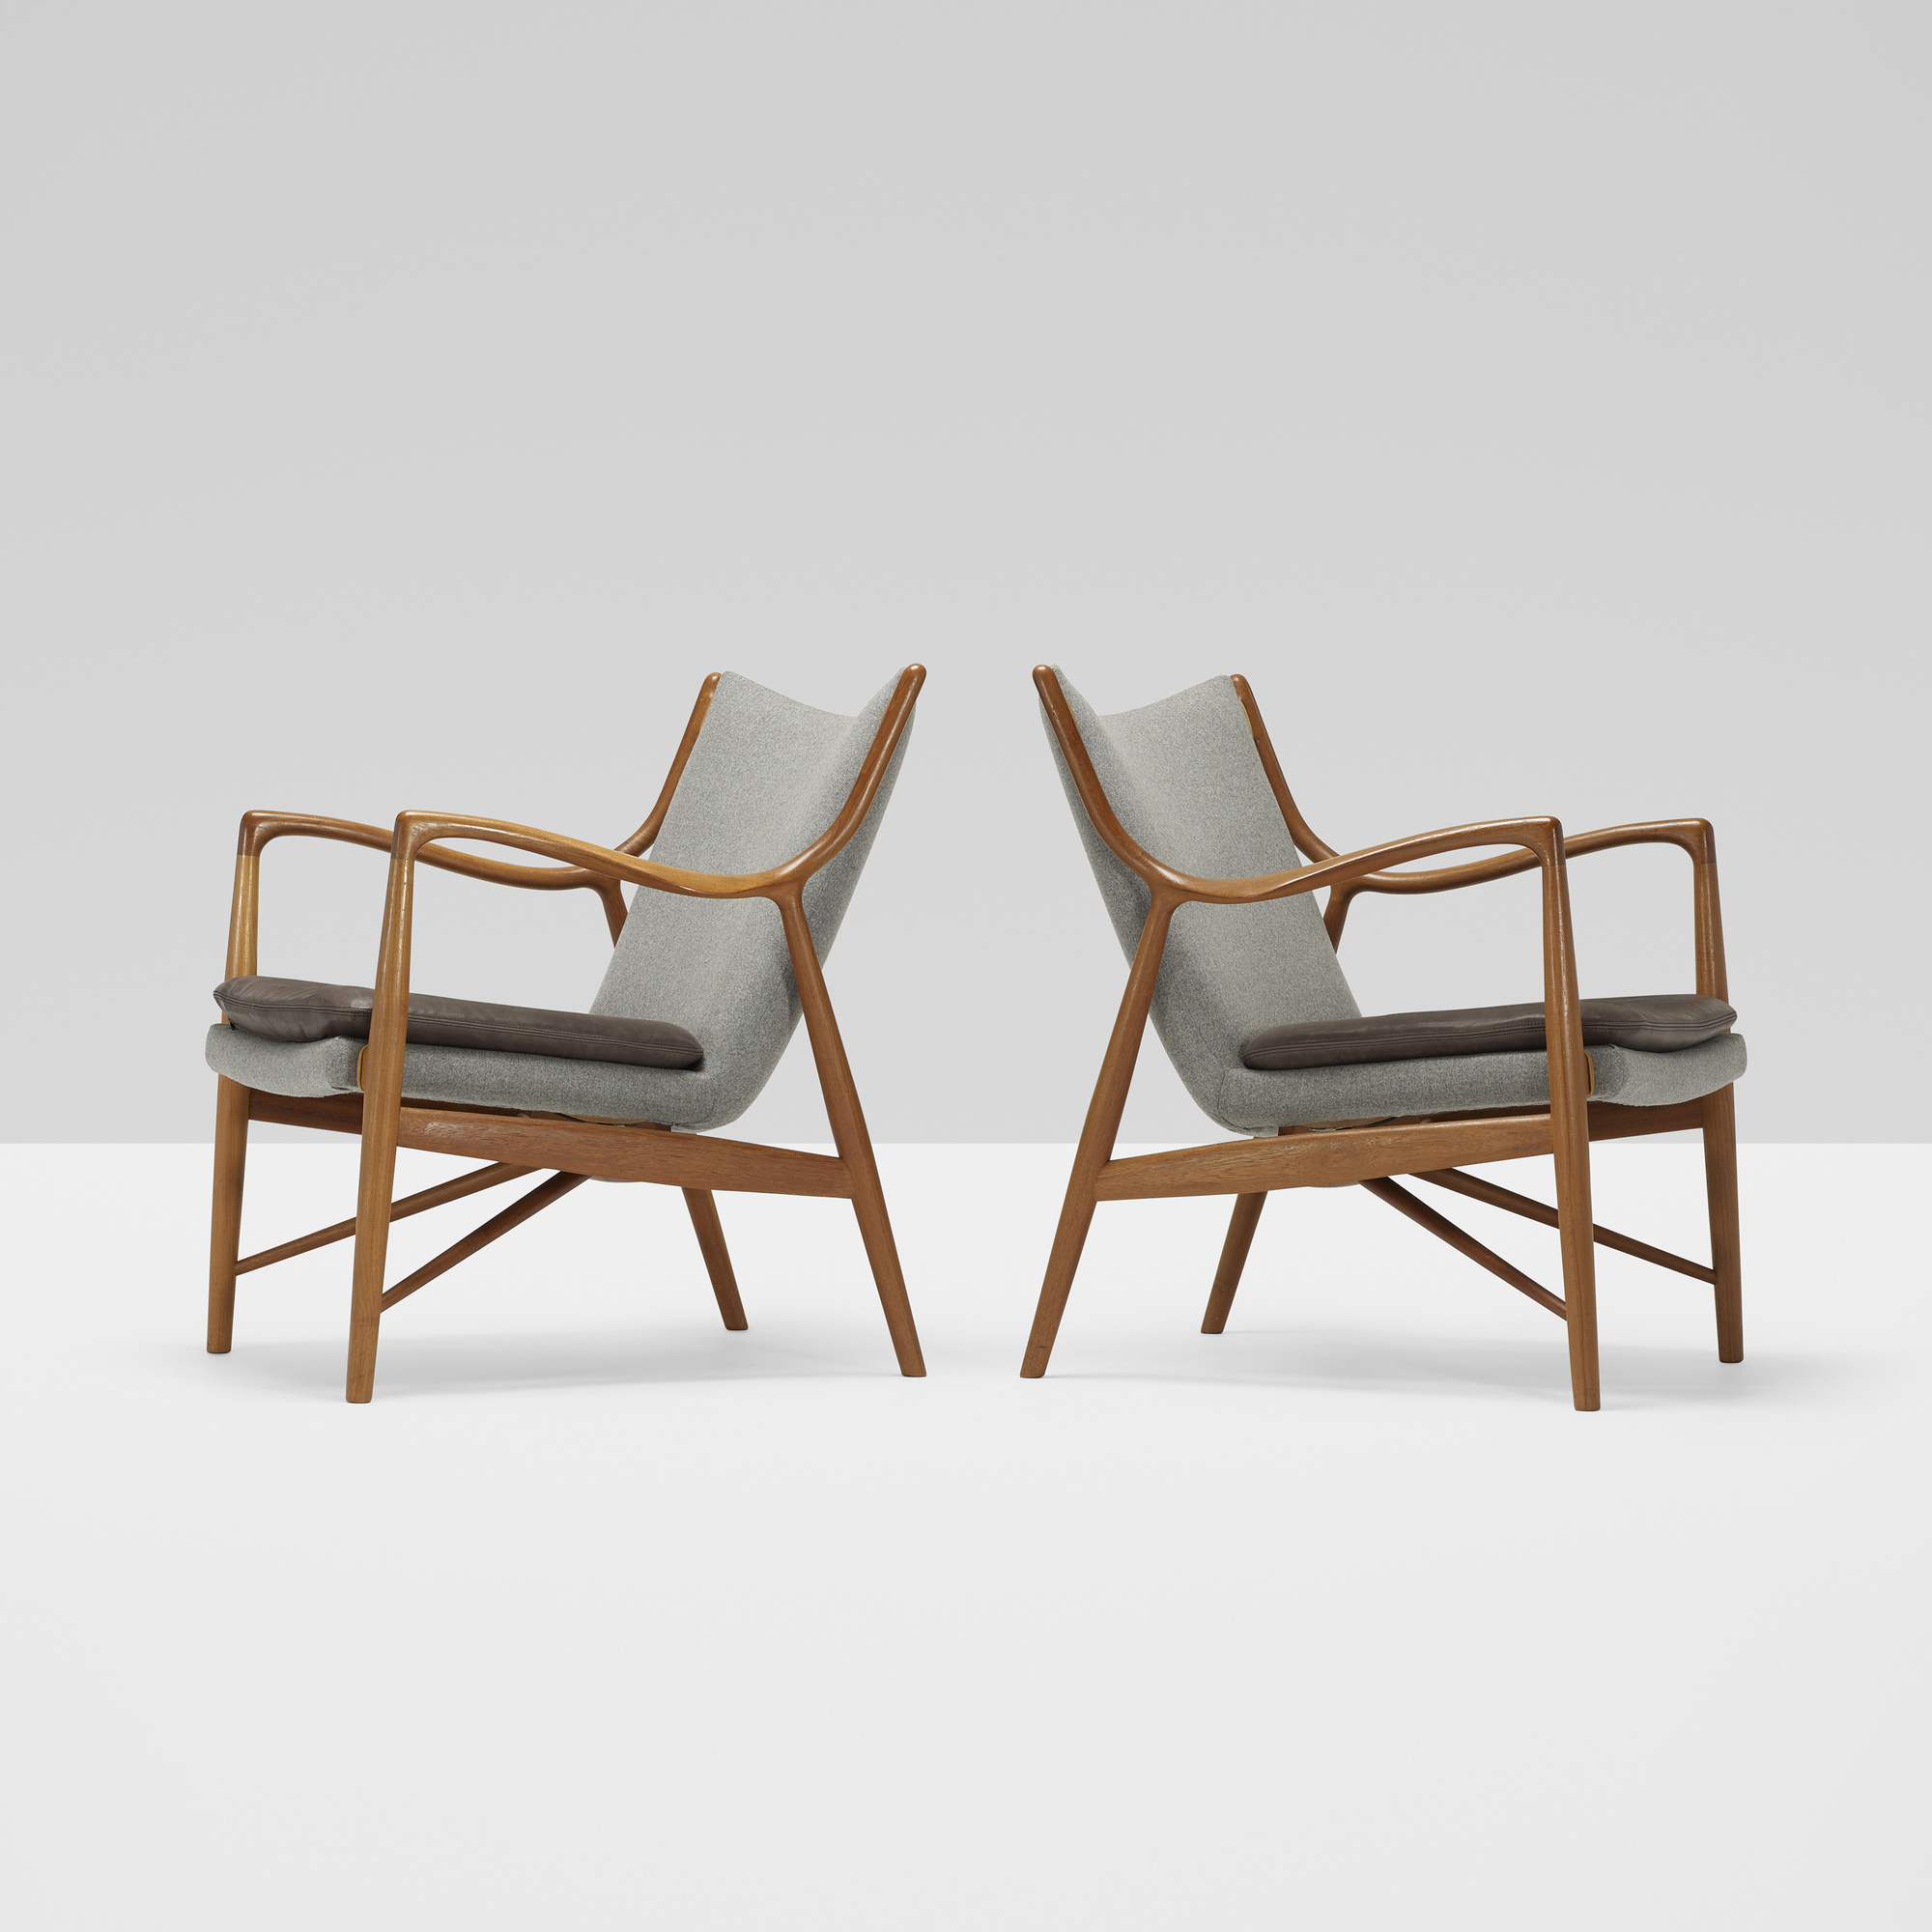 204: Finn Juhl / Lounge Chairs Model NV 45, Pair (1 Of